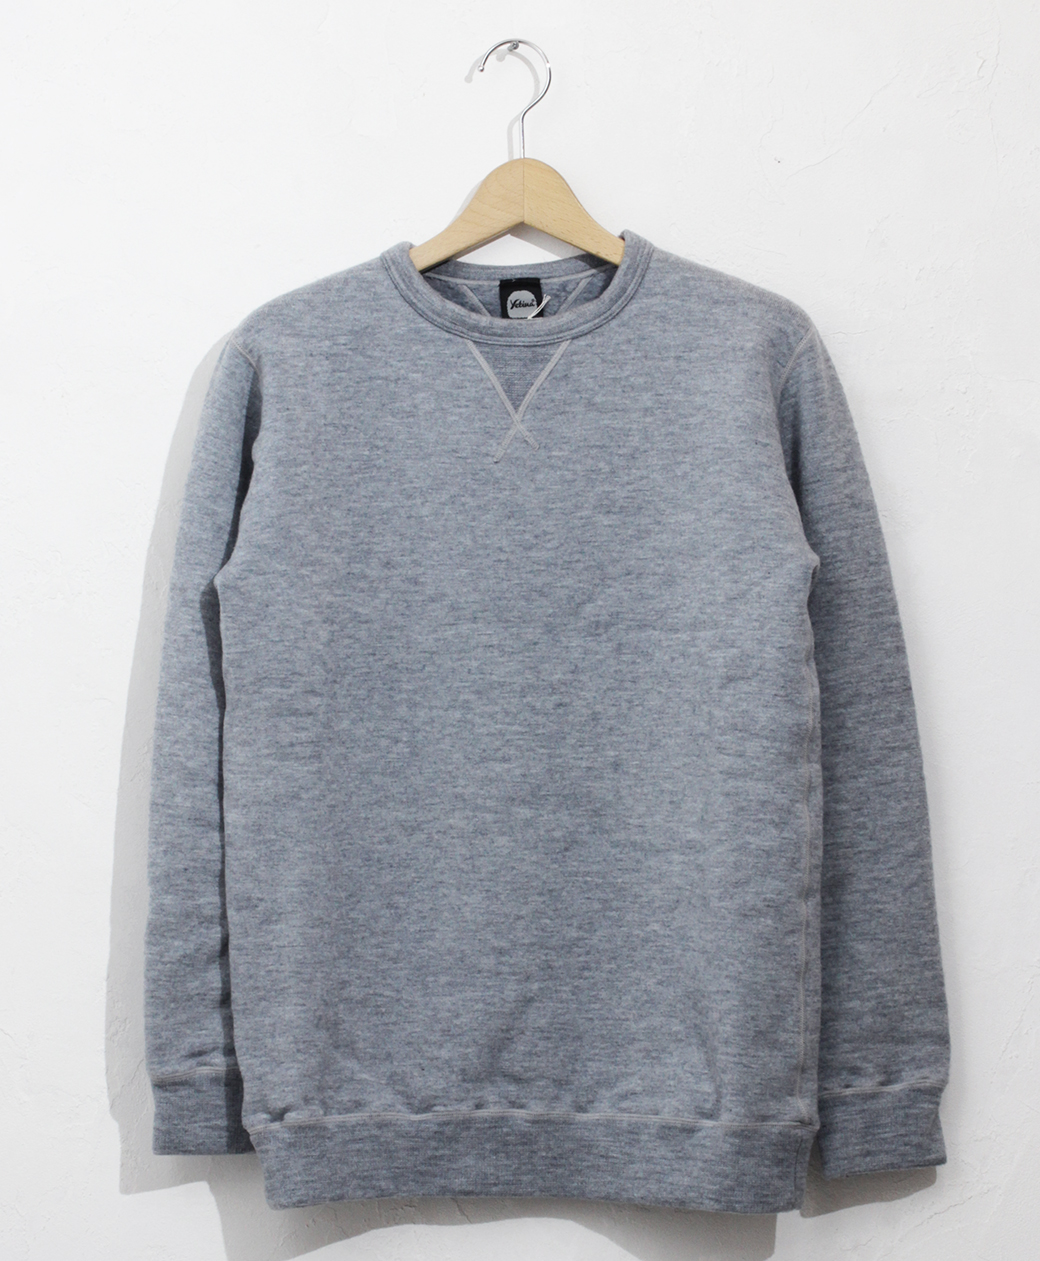 yetina sweat shirt(Fog Blue)